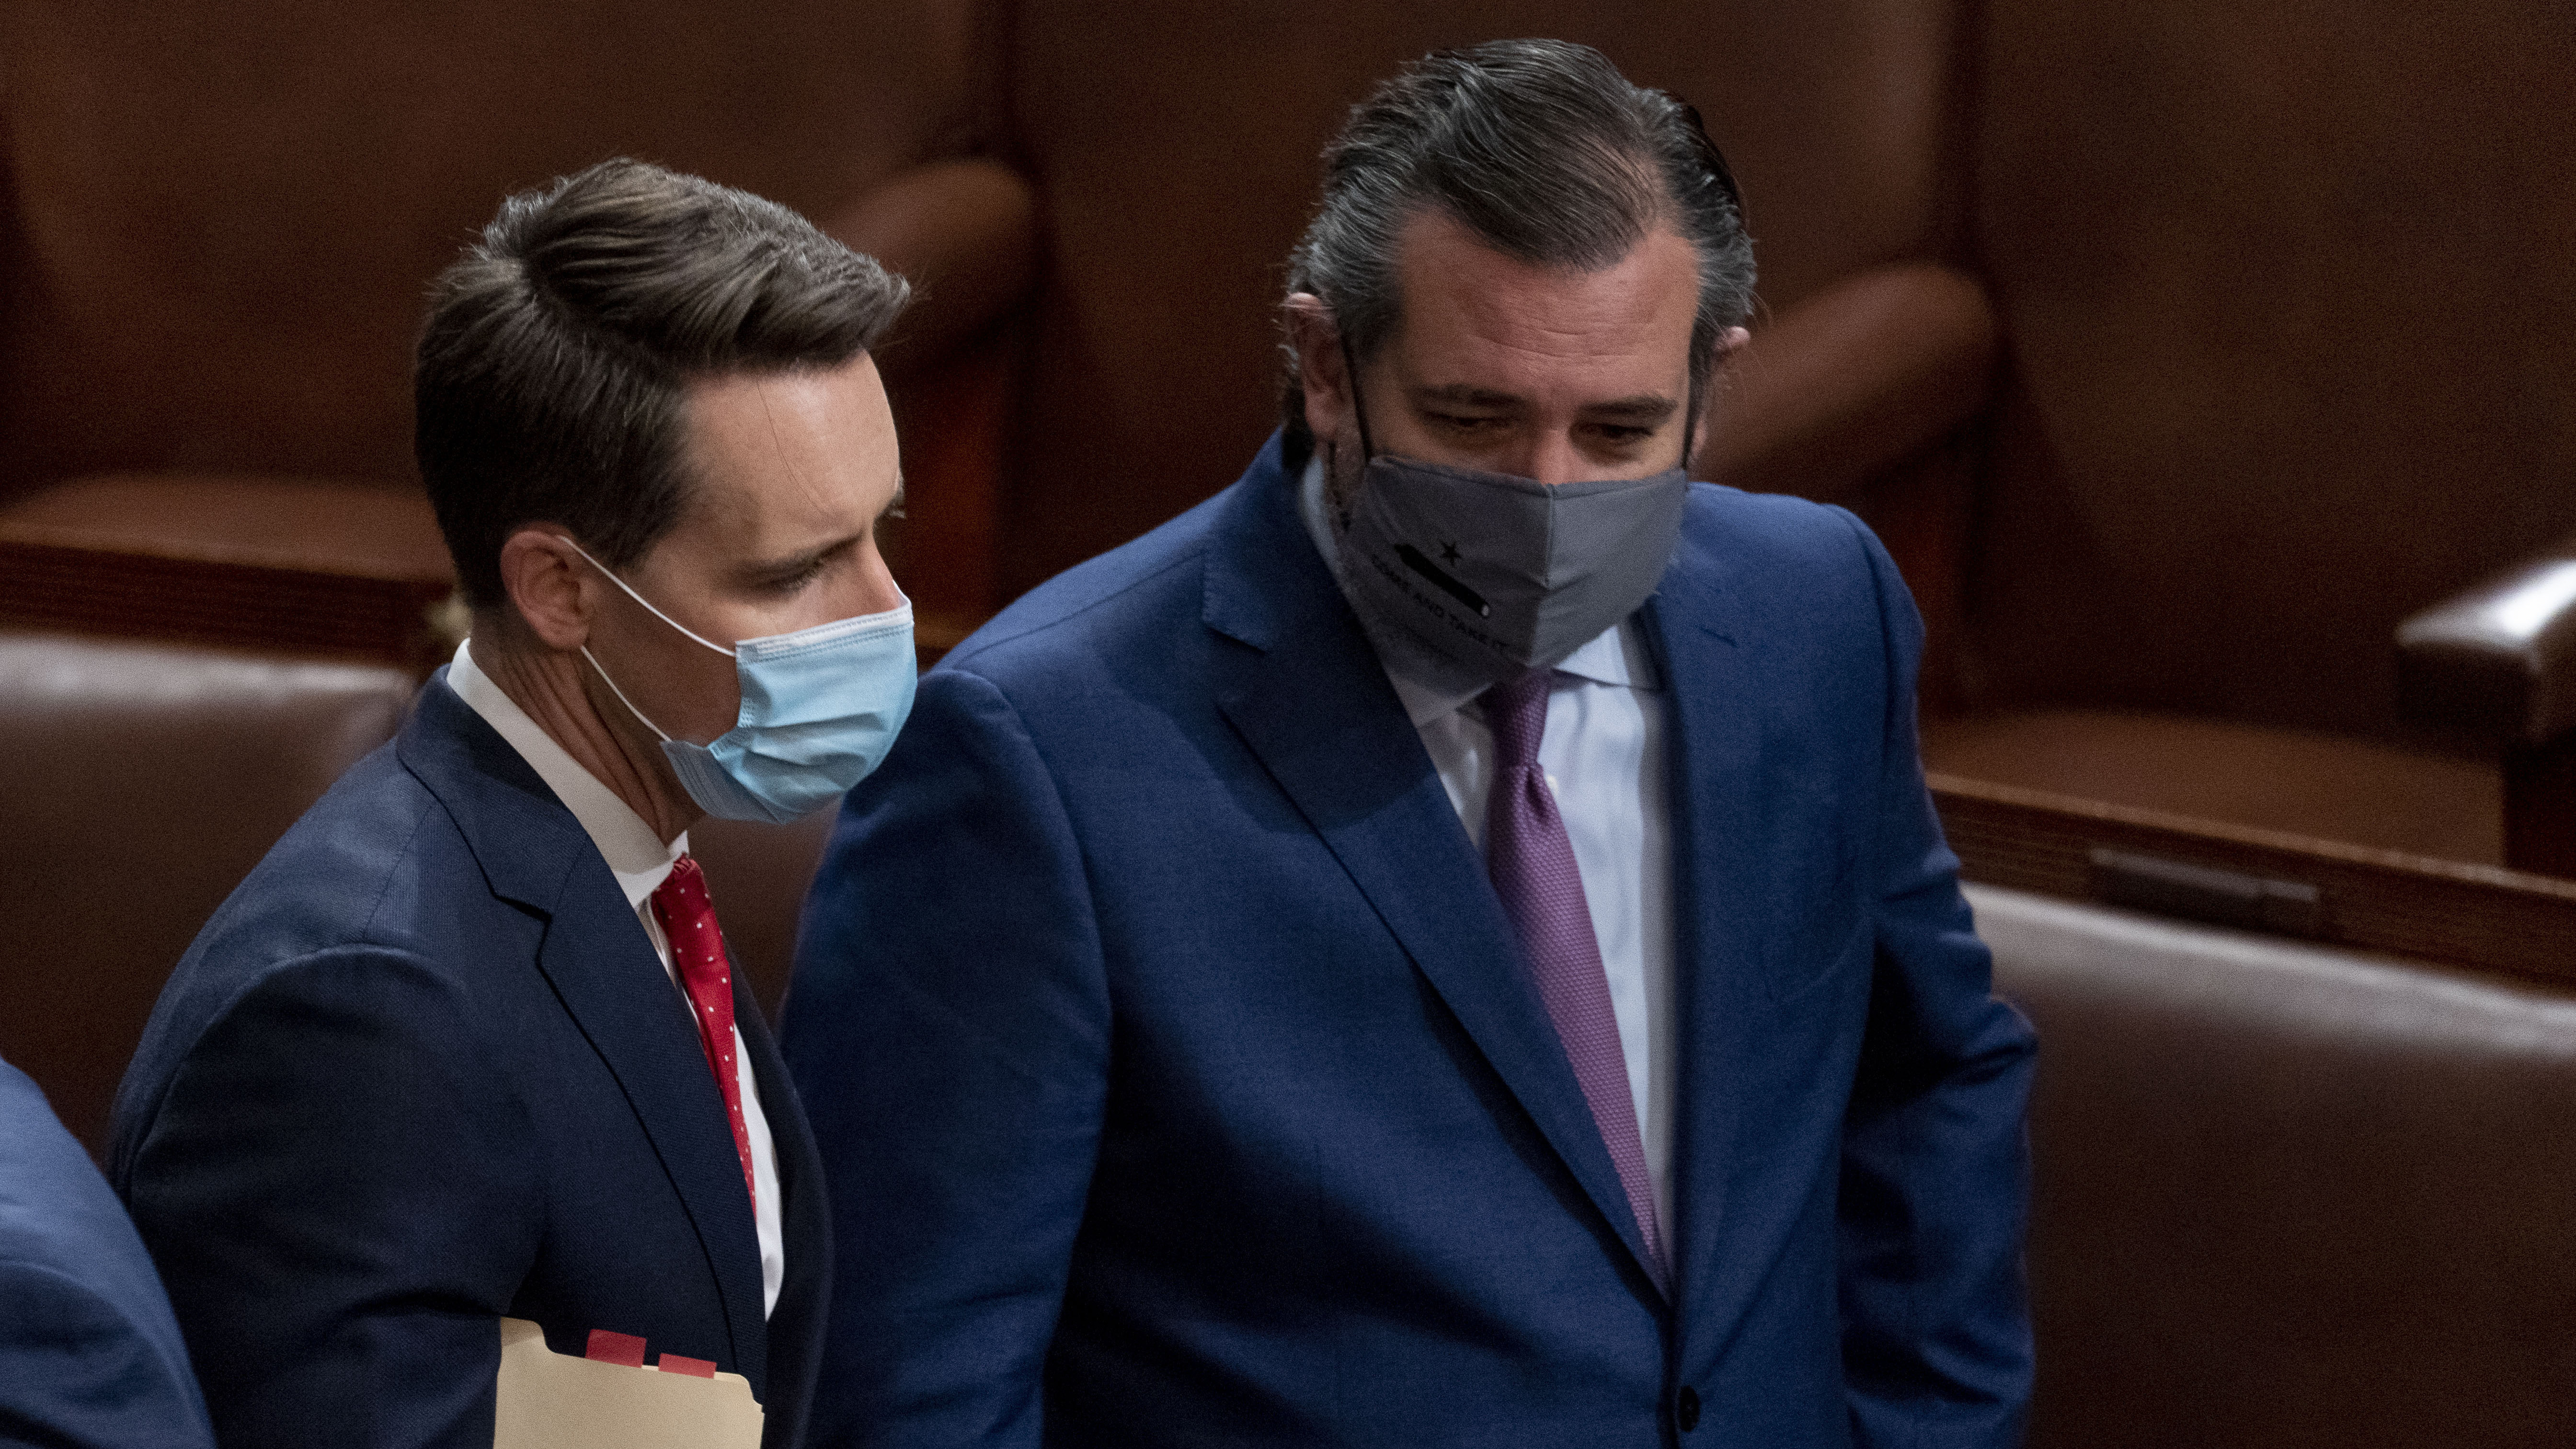 Seven Senate Democrats filed an ethics complaint Thursday against Sens. Josh Hawley, R-Mo., and Ted Cruz, R-Texas, over their Jan. 6 objections to the November presidential elections.